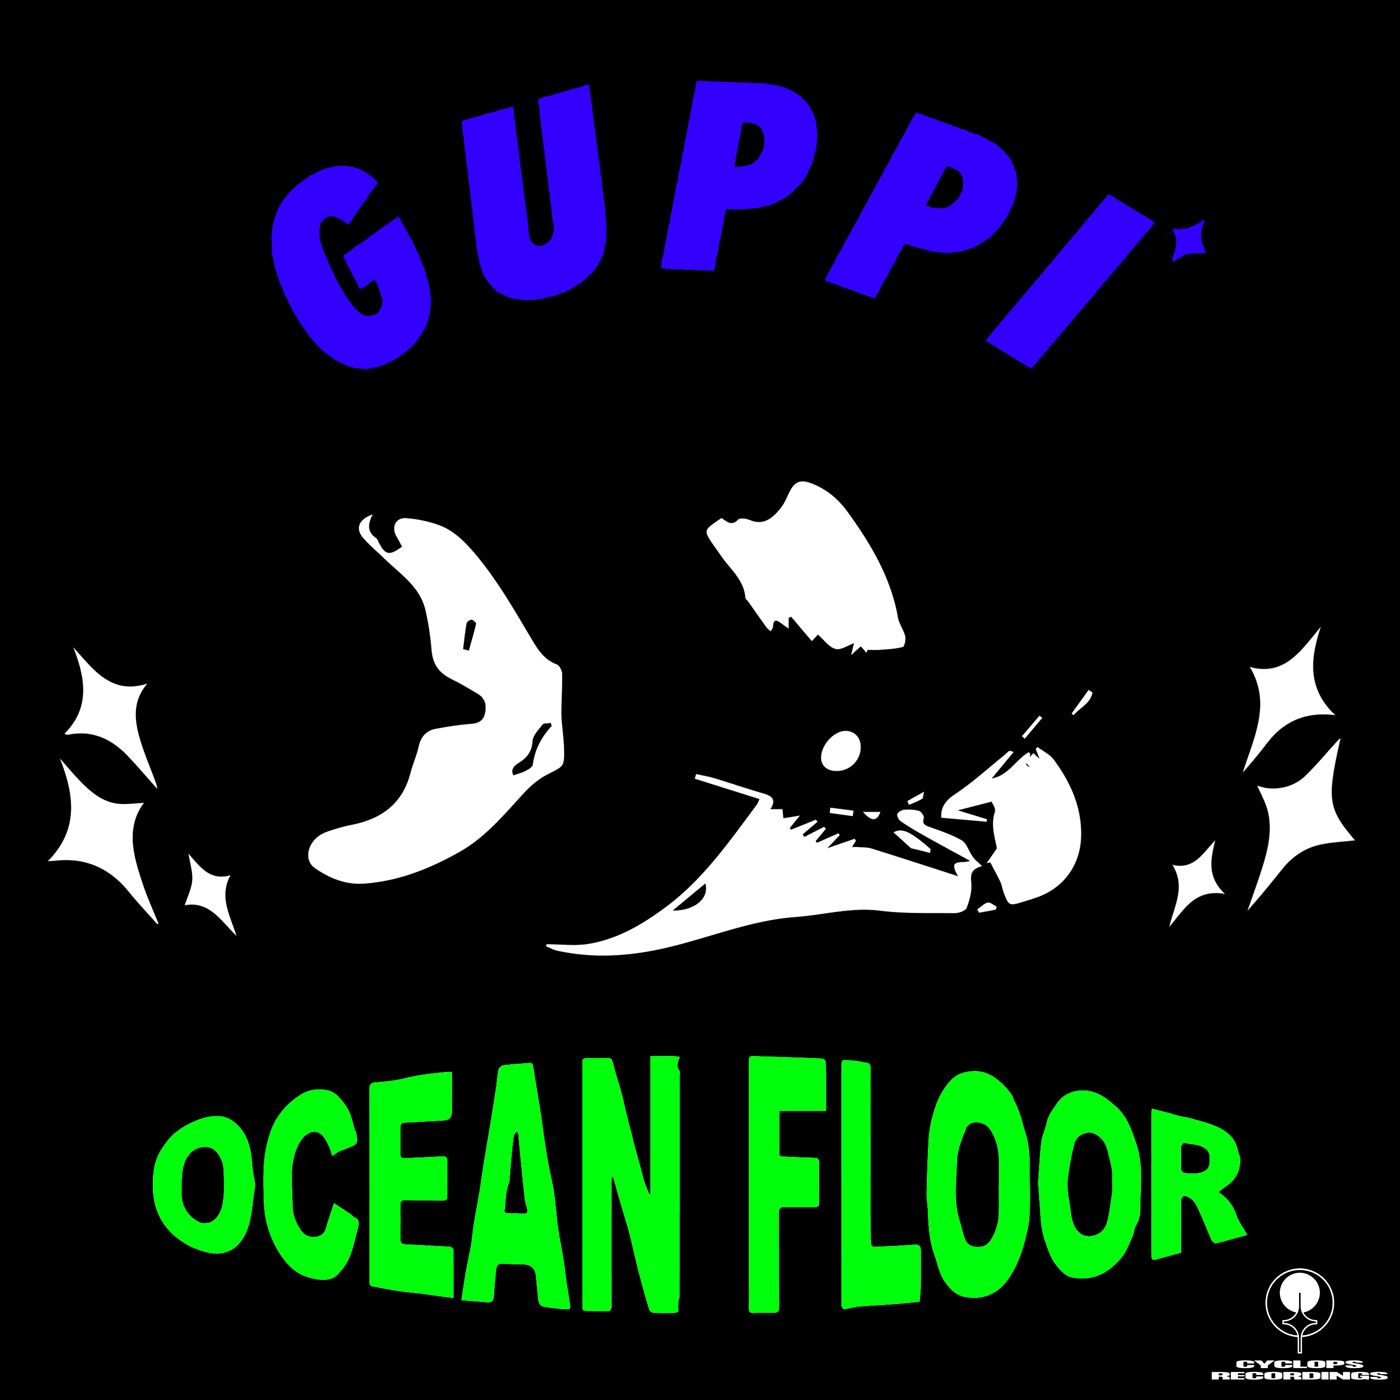 Ocean Floor Debut EP Guppi